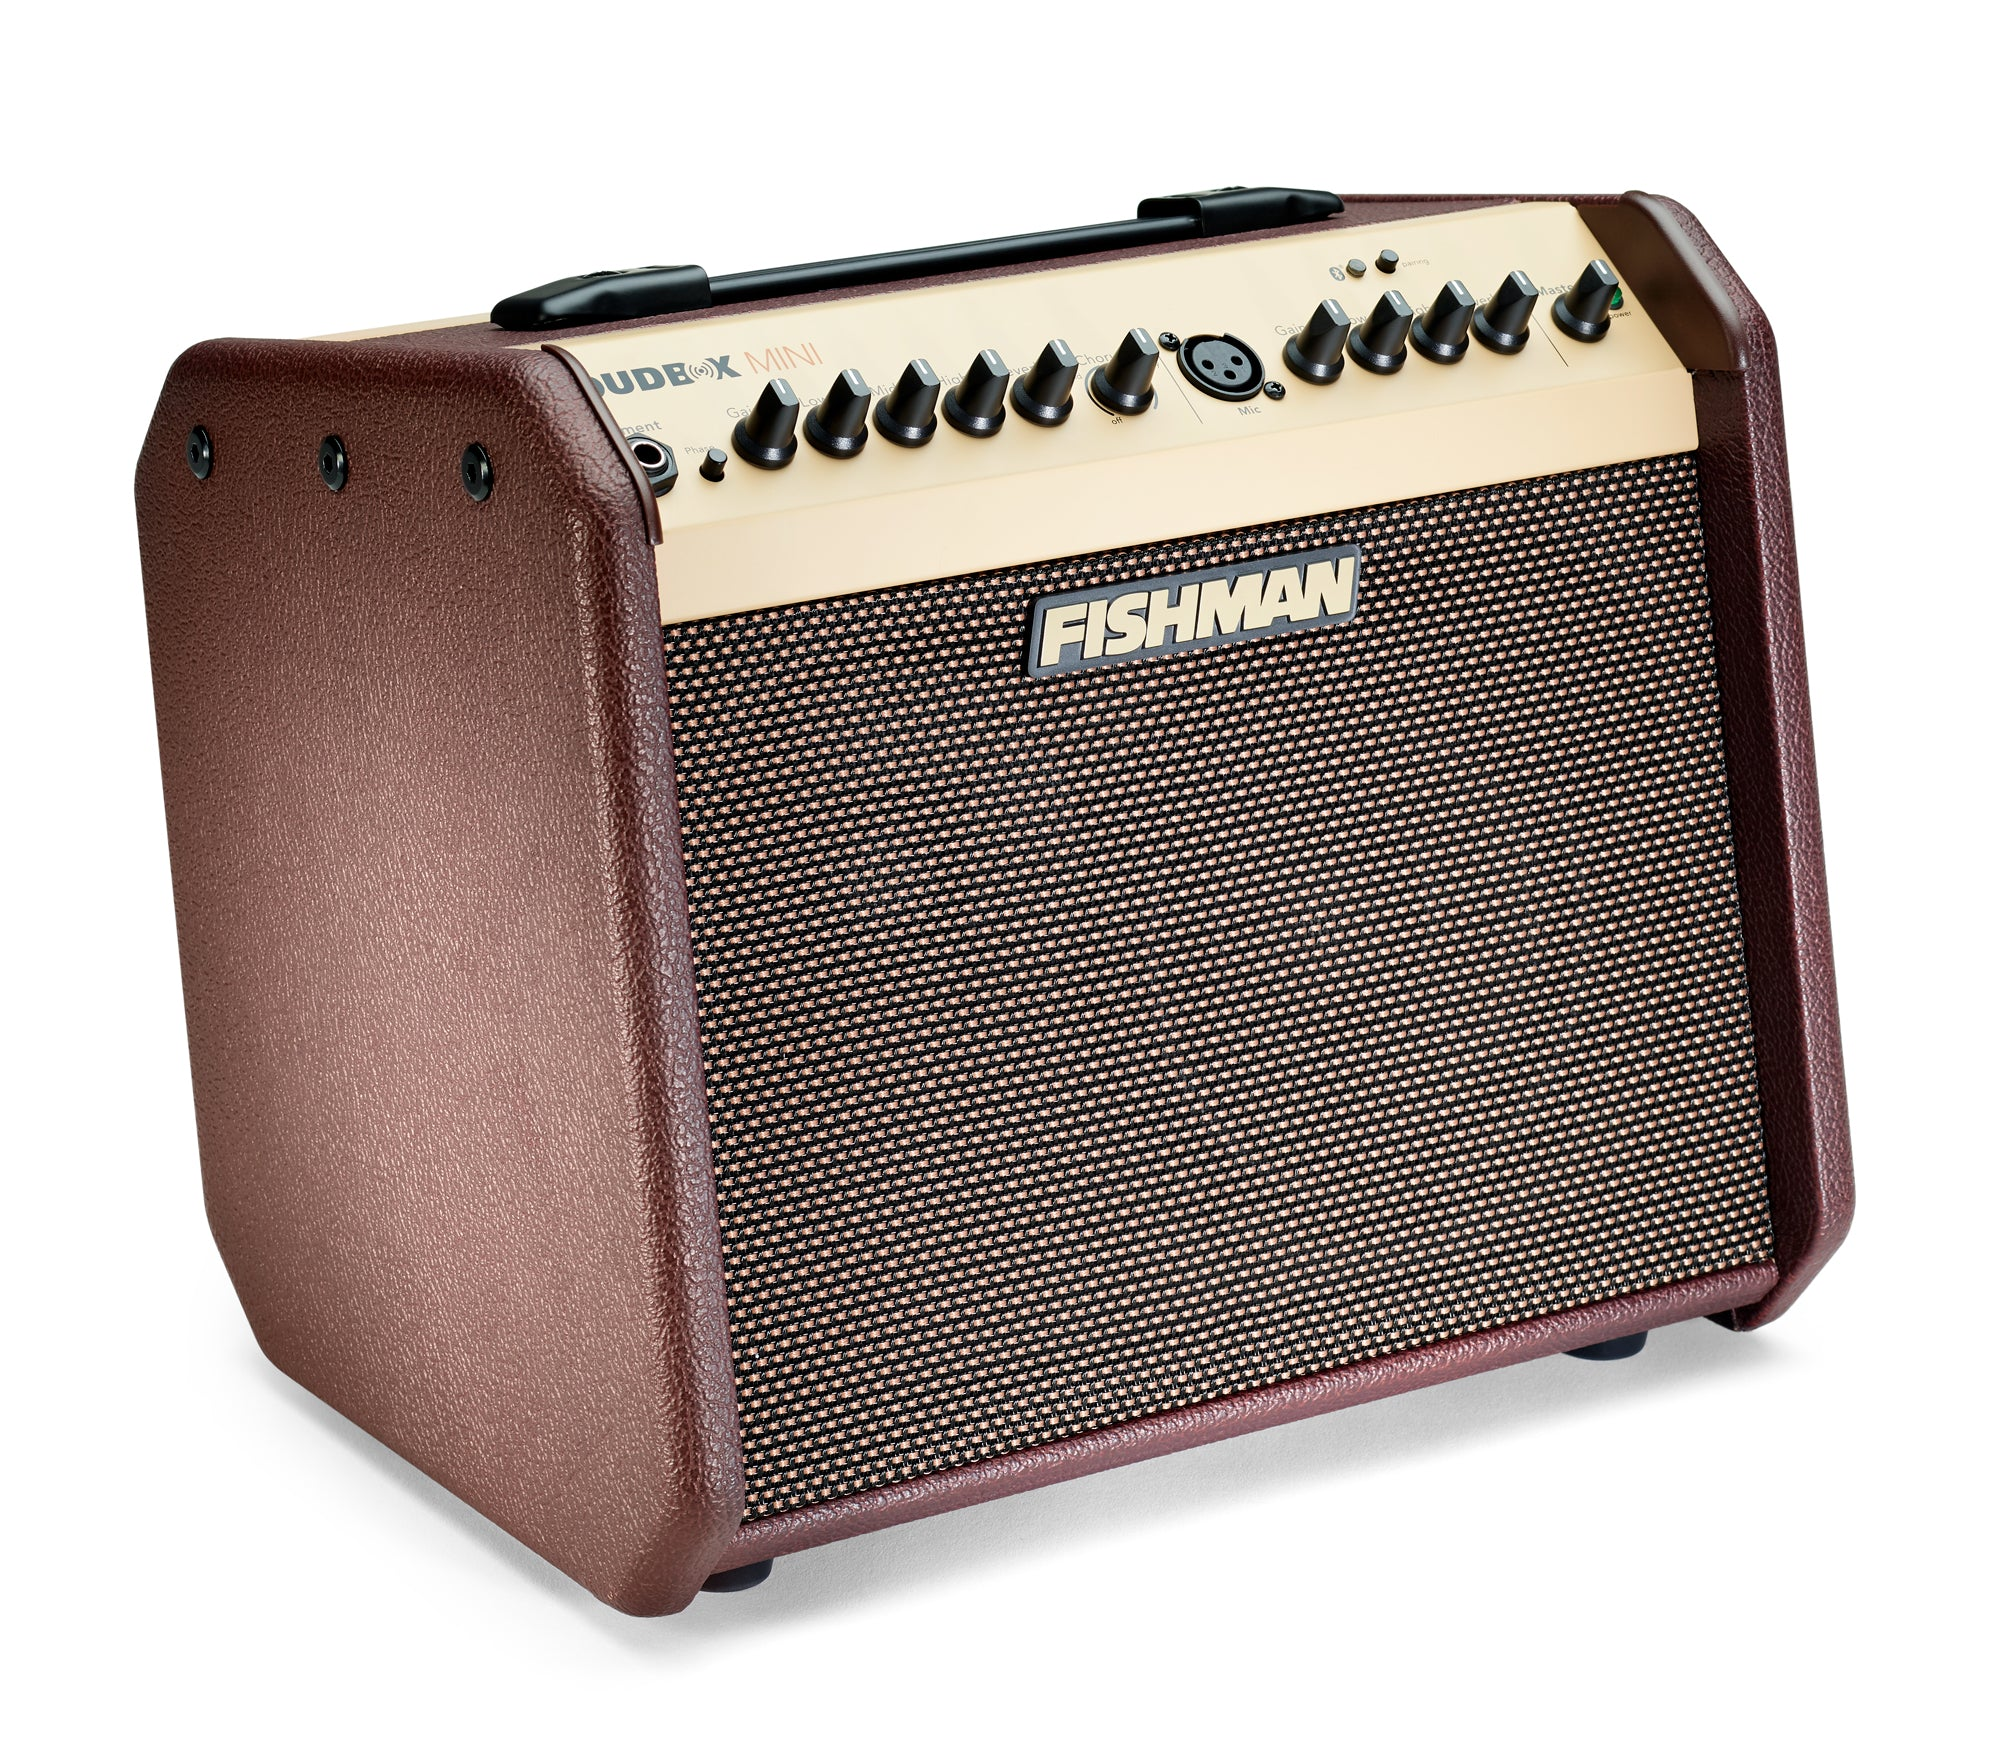 Fishman PRO-LBT-500 Loudbox Mini Amplifier+ BT